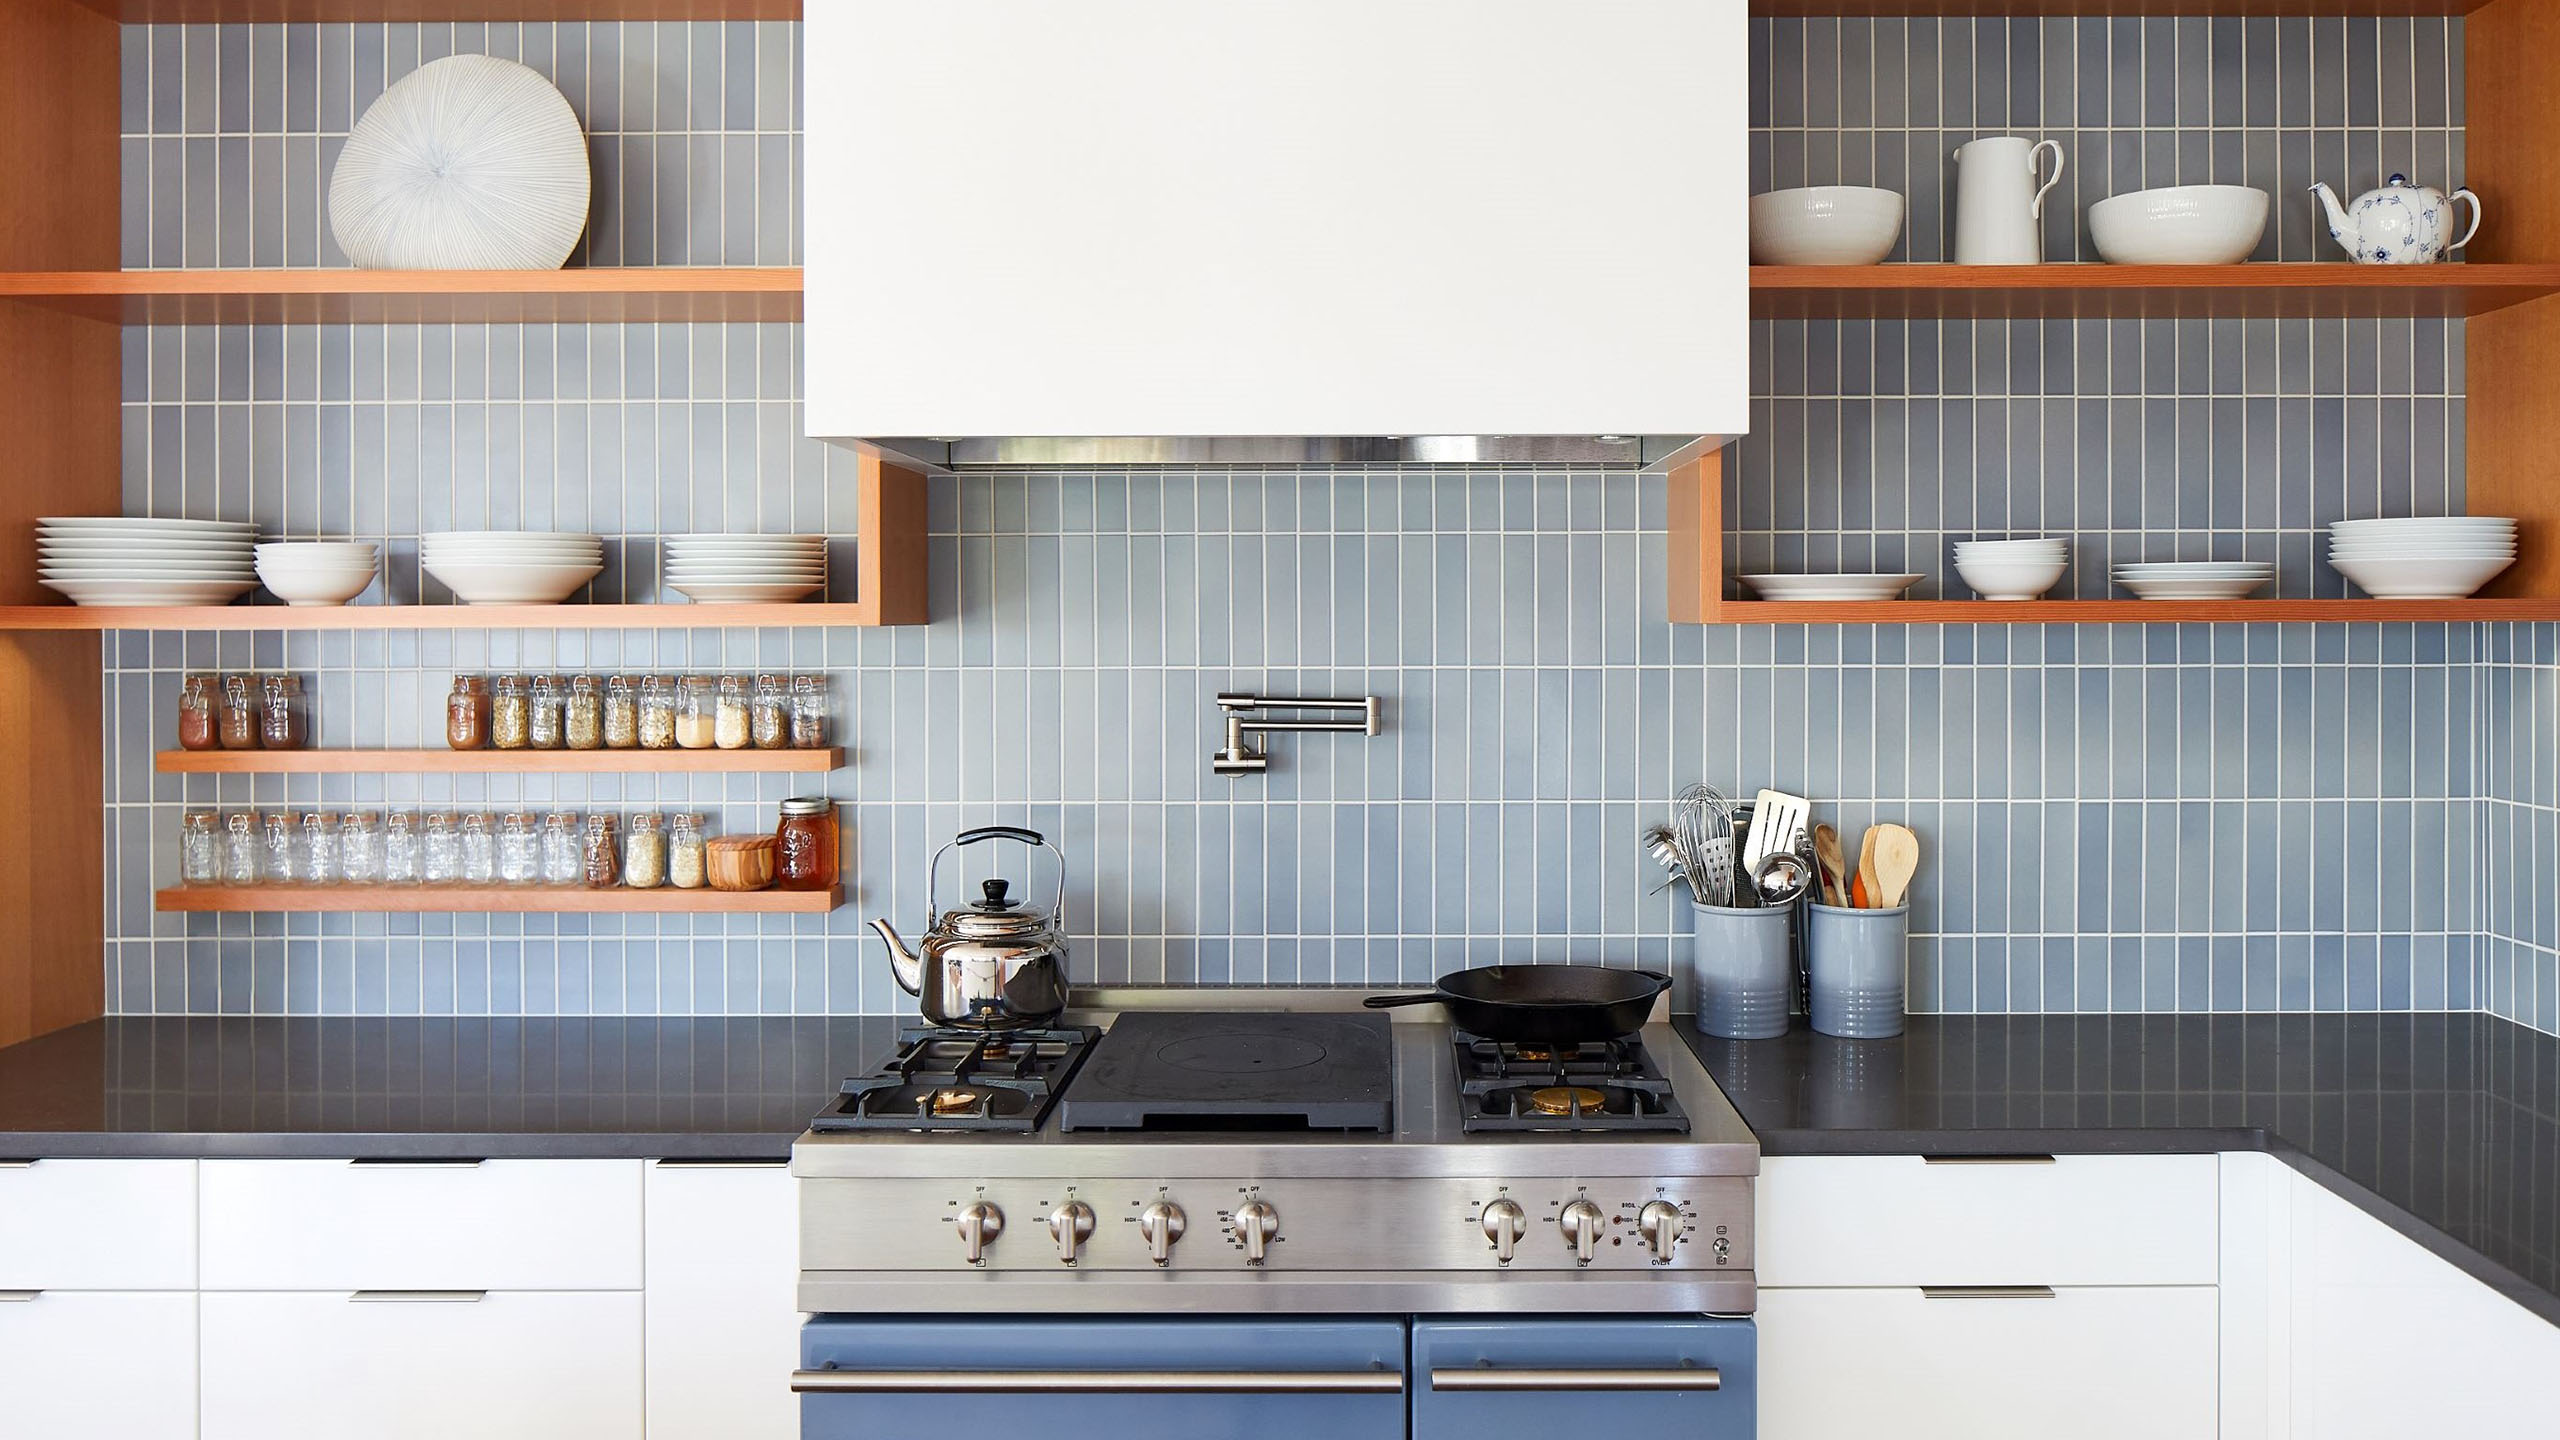 Farmhouse Interior Design Sonoma County 2 Kitchen with blue Heath tile modern LaCanche range